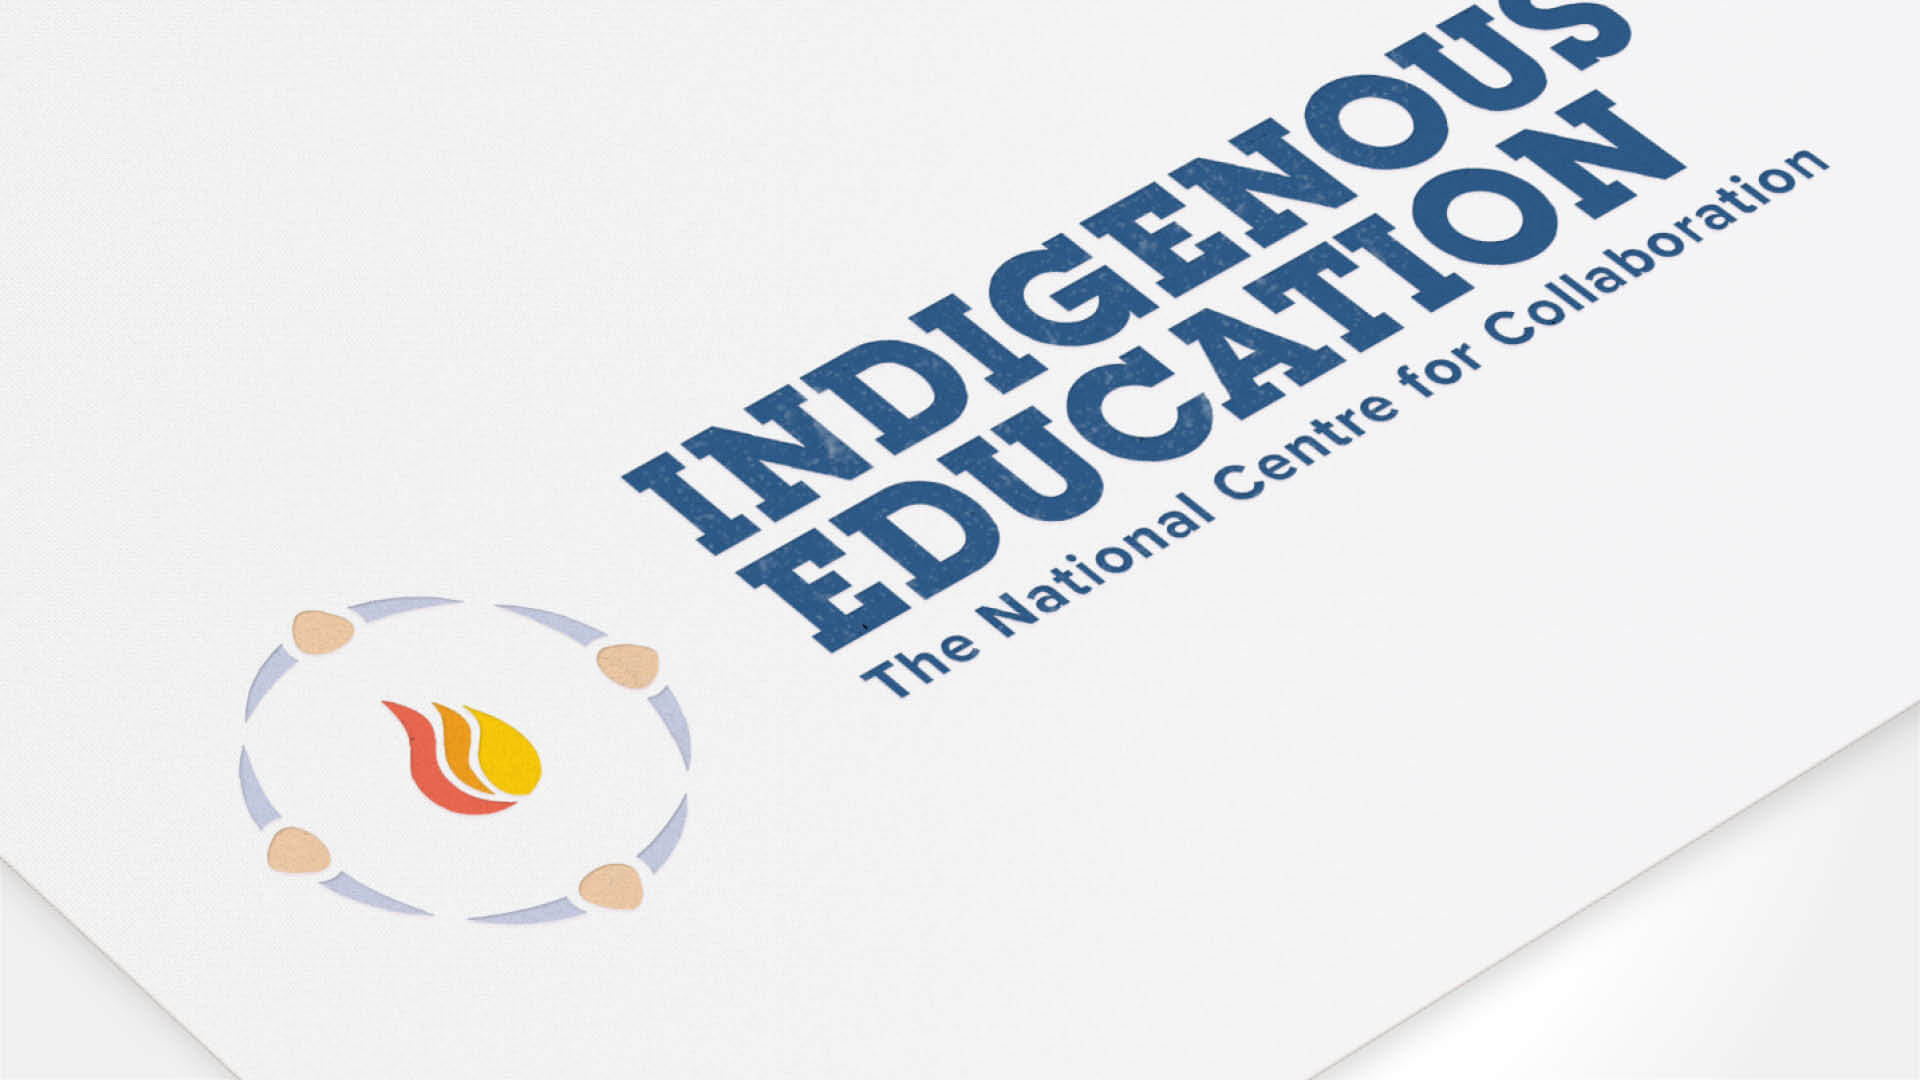 National Centre for Collaboration in Indigenous Education, Brand, NCCIE Logo, Visual Identity Guide, Portfolio Image,